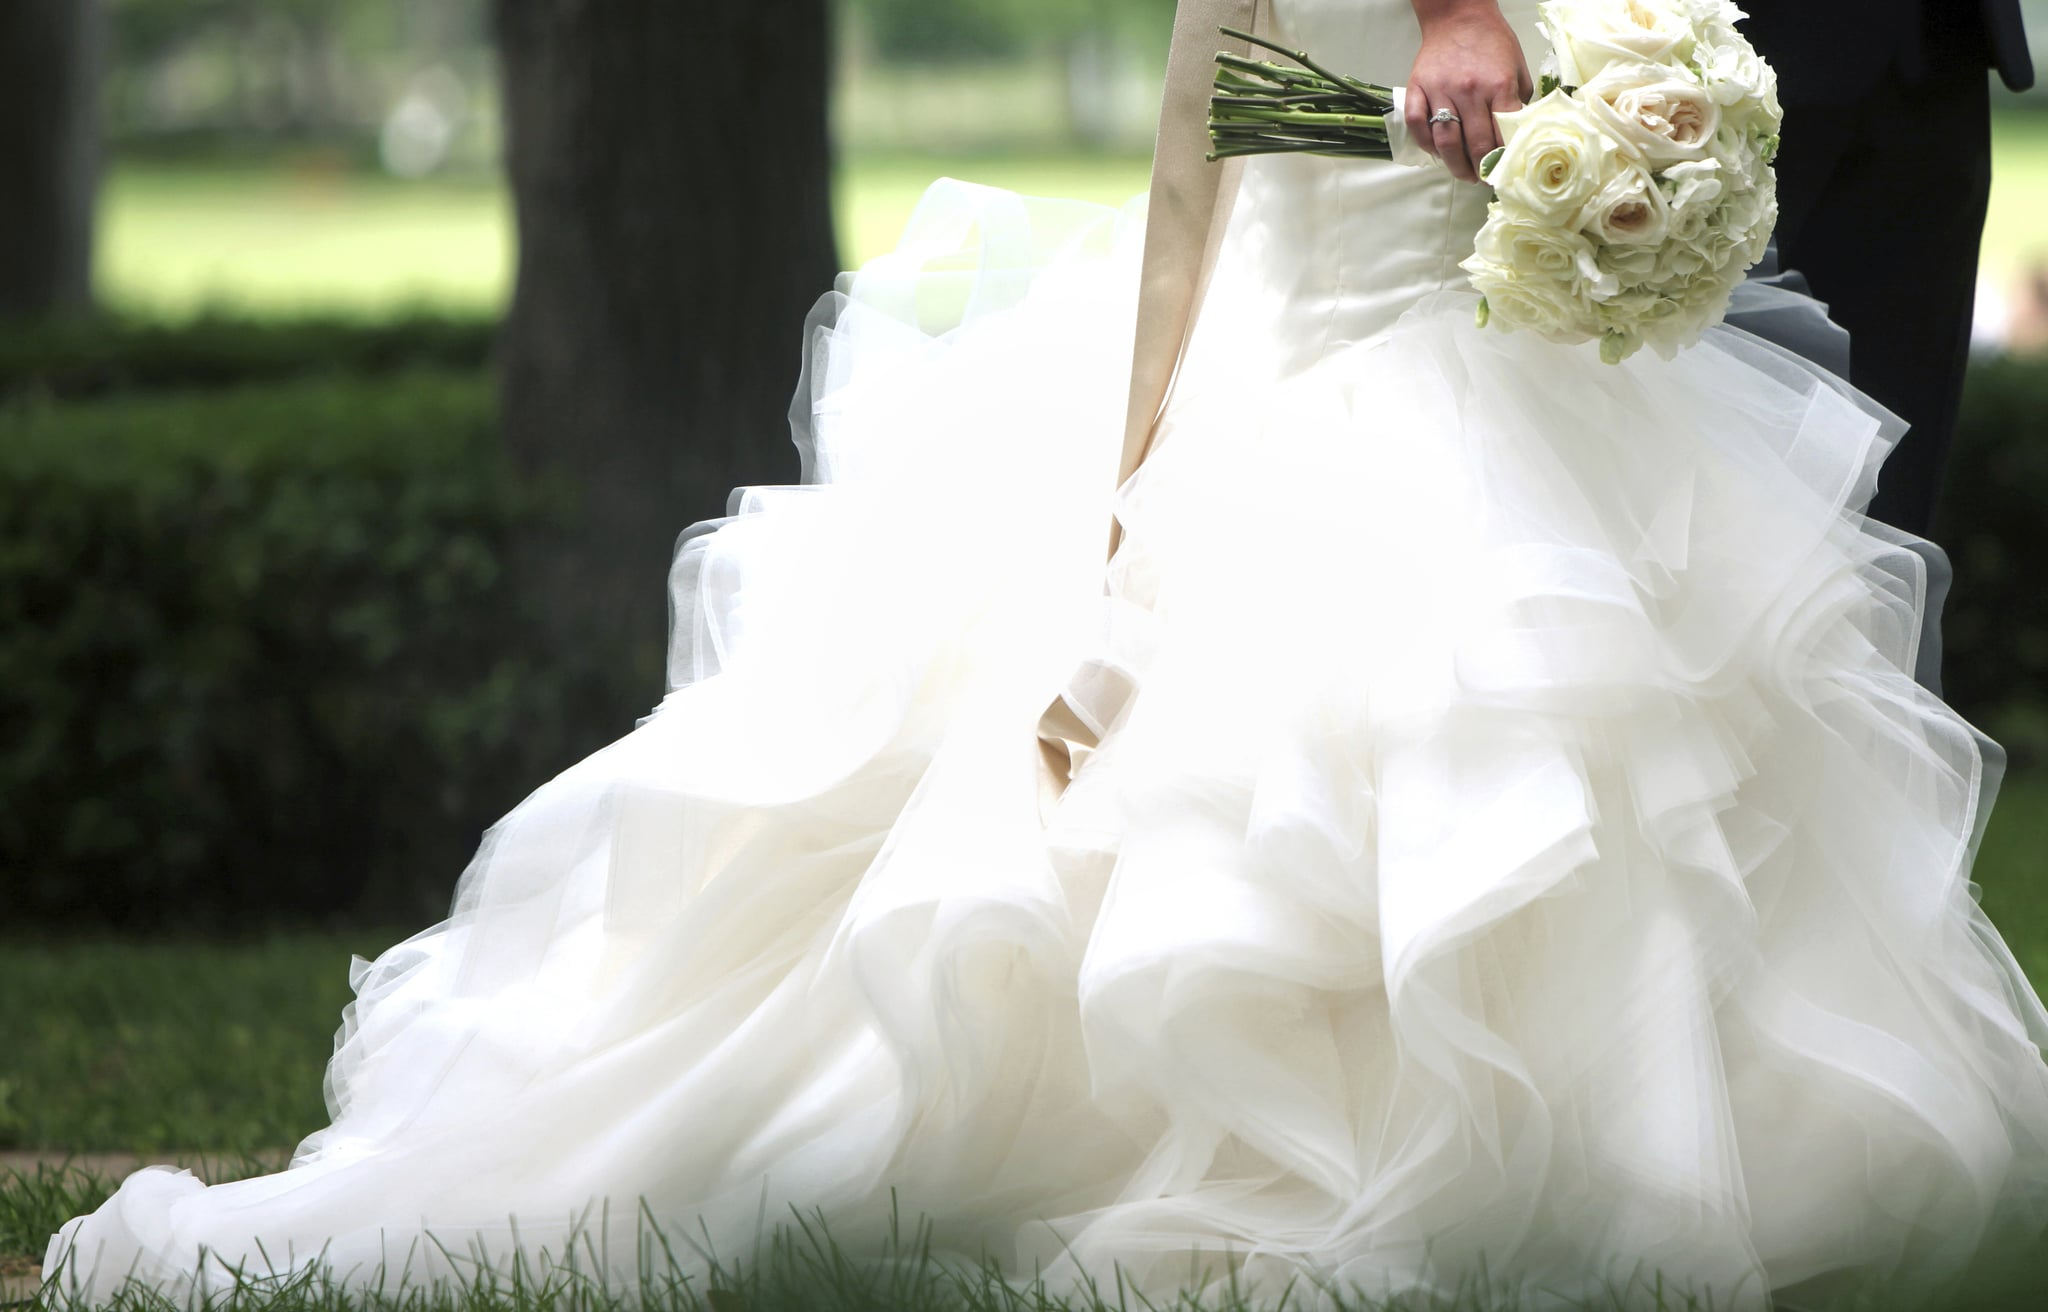 The Beginner's Guide to Weddings